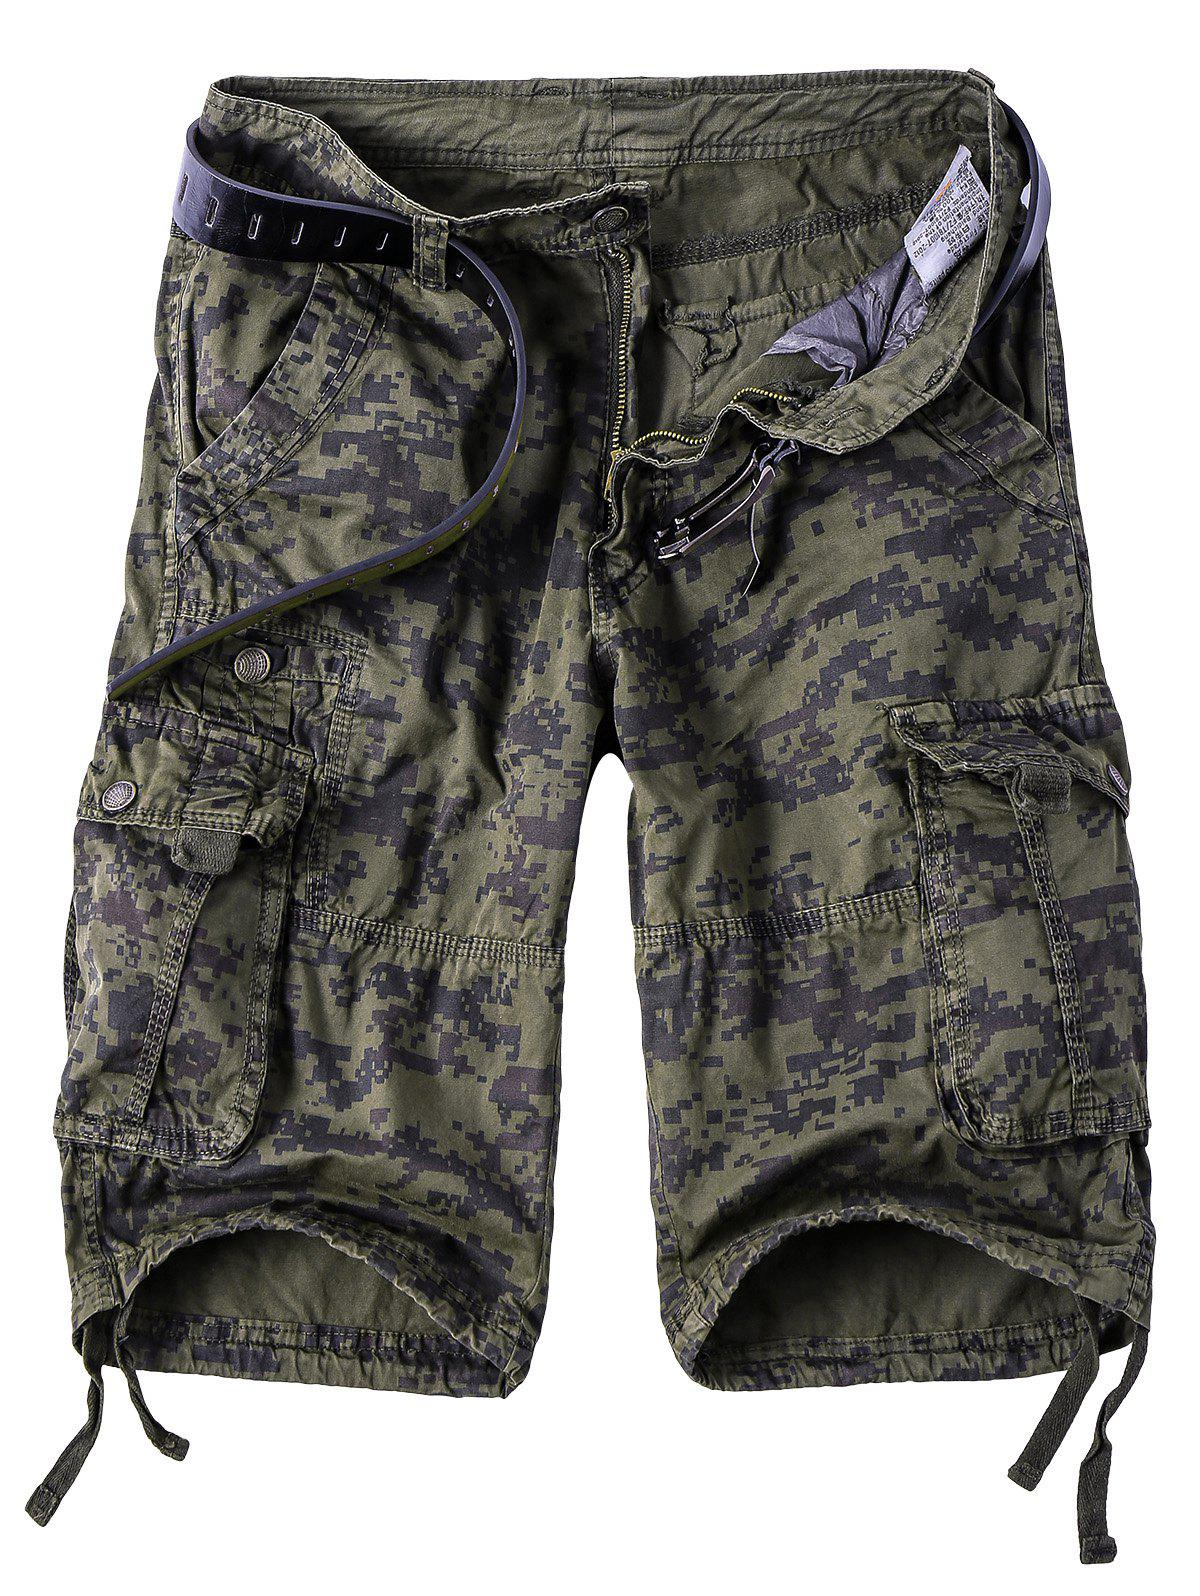 Men's Camouflage Straight Leg Multi-Pocket Zipper Fly Cargo Shorts - CAMOUFLAGE 3XL